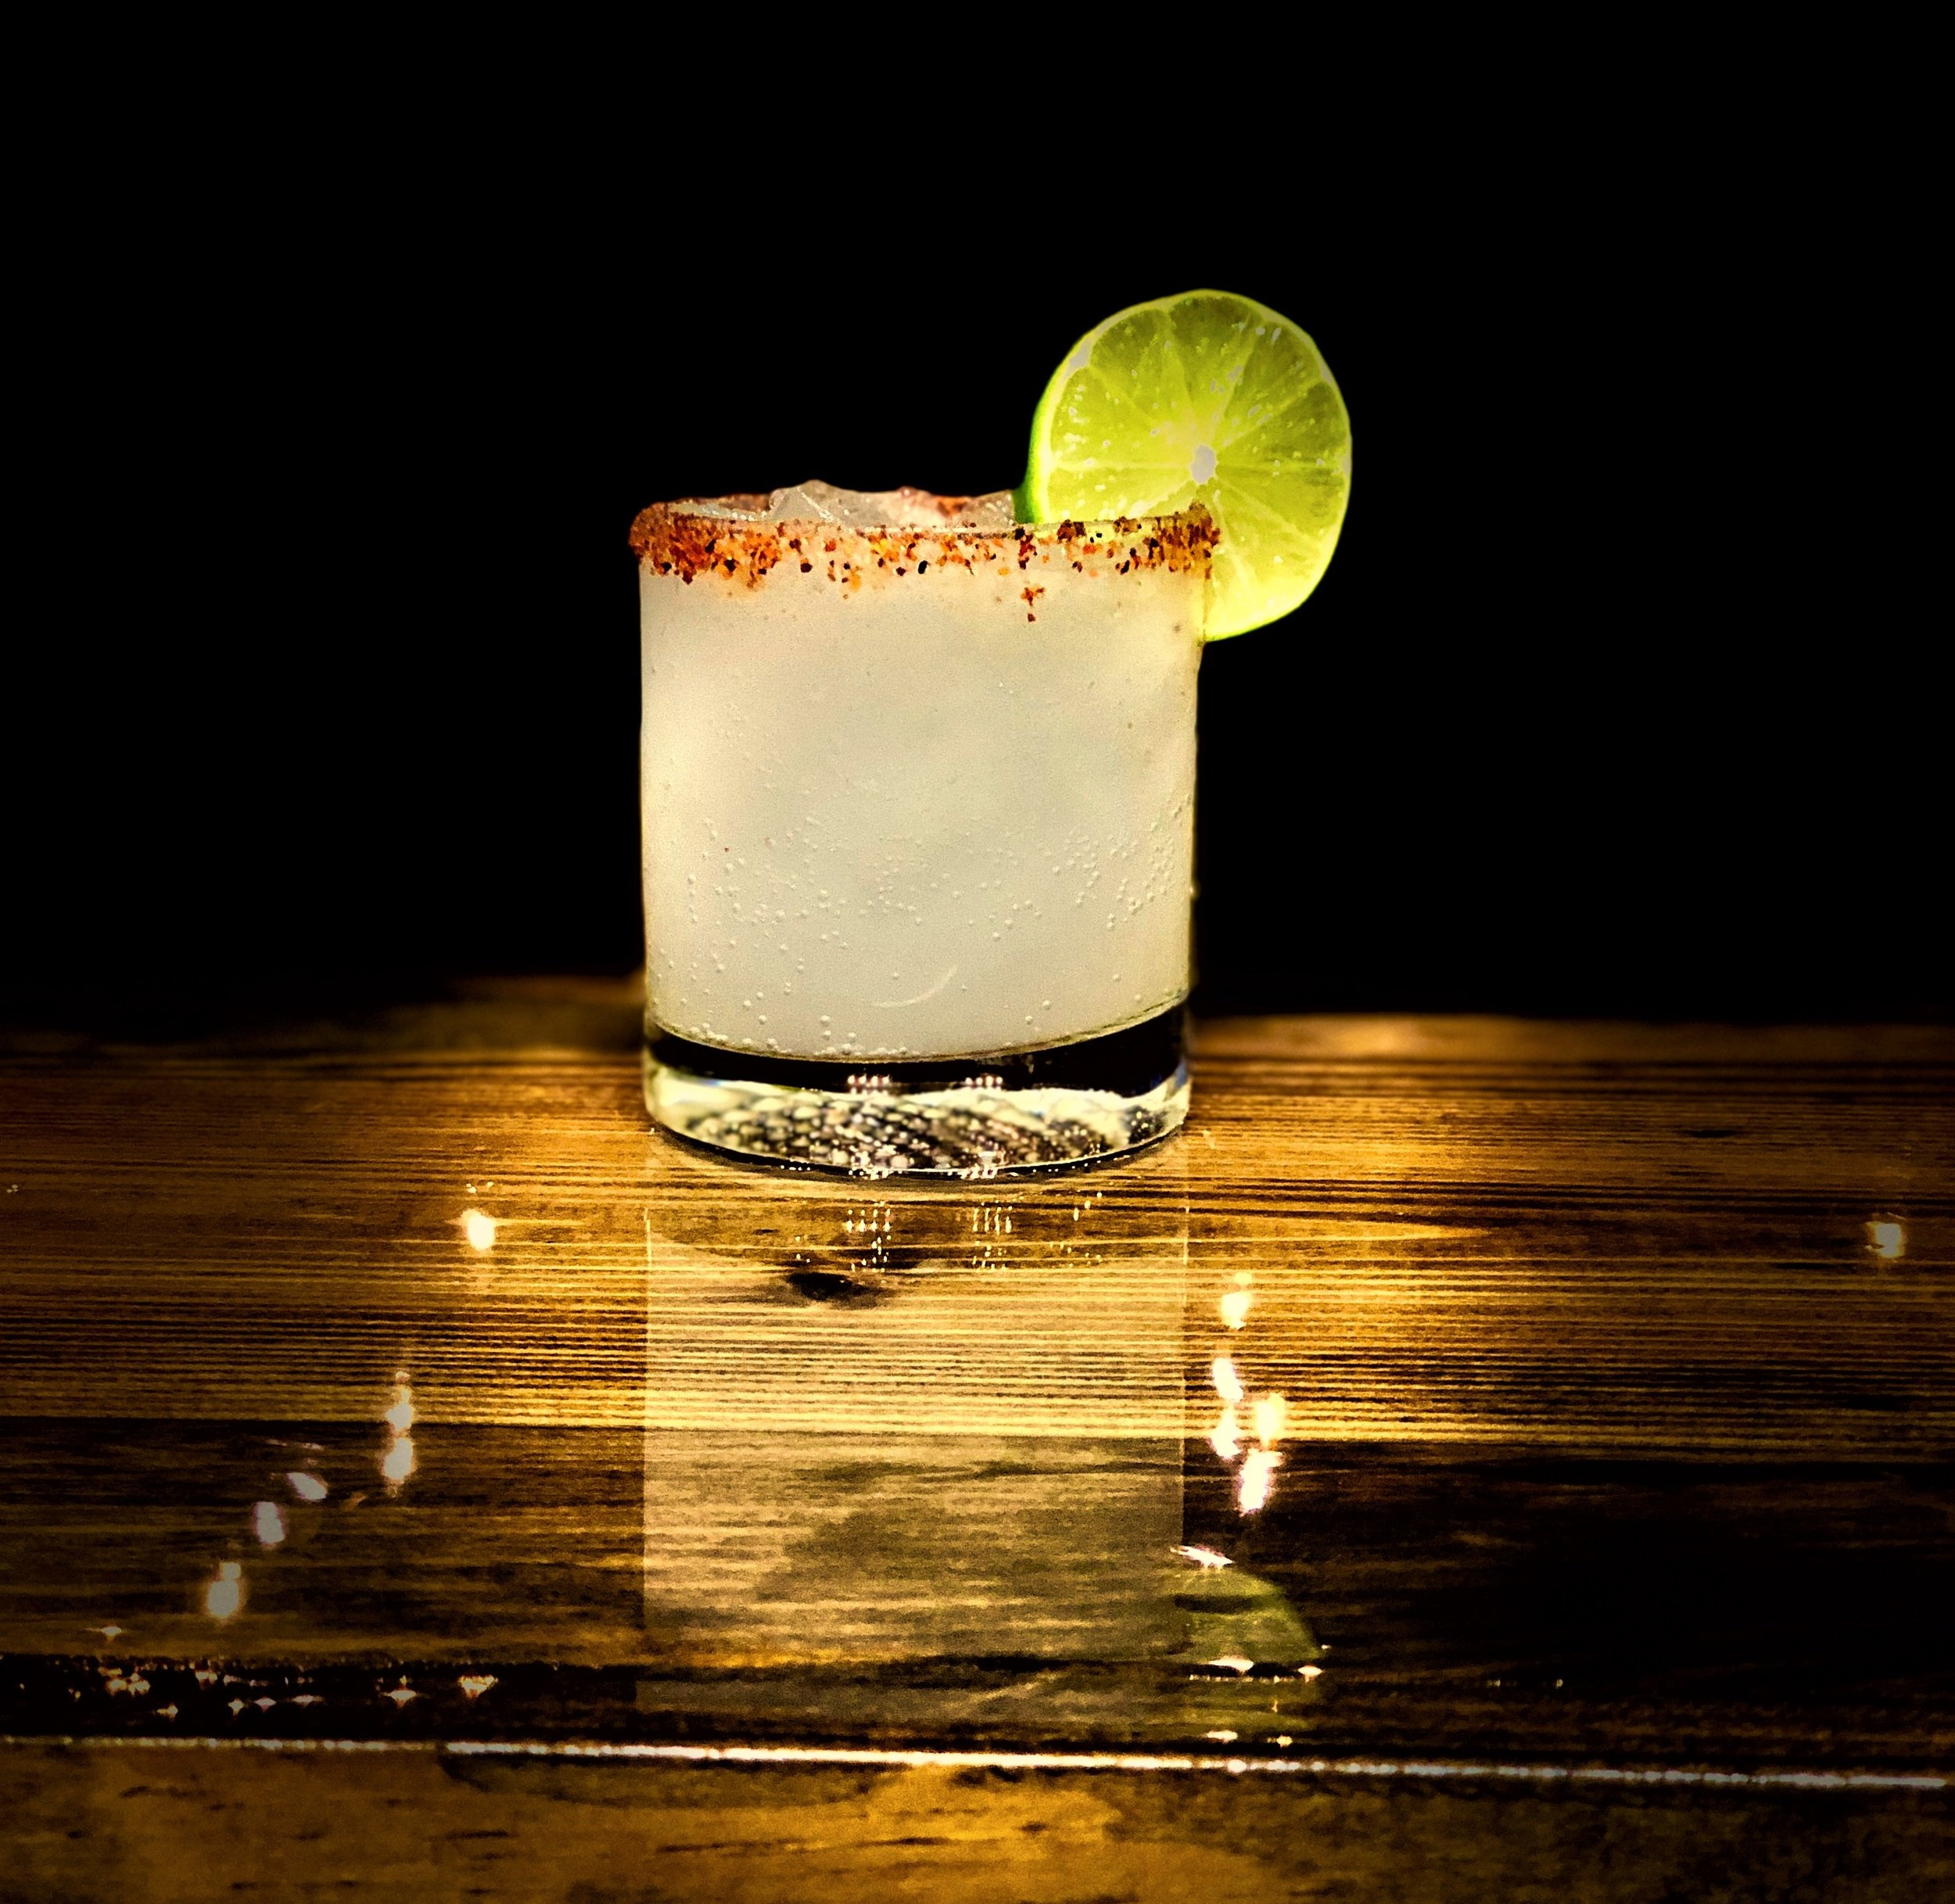 THE PONY EXPRESS  1.5 ounces of a mini bottle of Wild Rag Vodka or Wild Rag Mesquite Bean Vodka 1/2 ounce fresh squeezed lime juice Dash of salt 3 - 4 ounces Grapefruit Soda  Pour all ingredients into a rocks glass rimmed with spicy or lime salt filled with ice and garnish with lime.